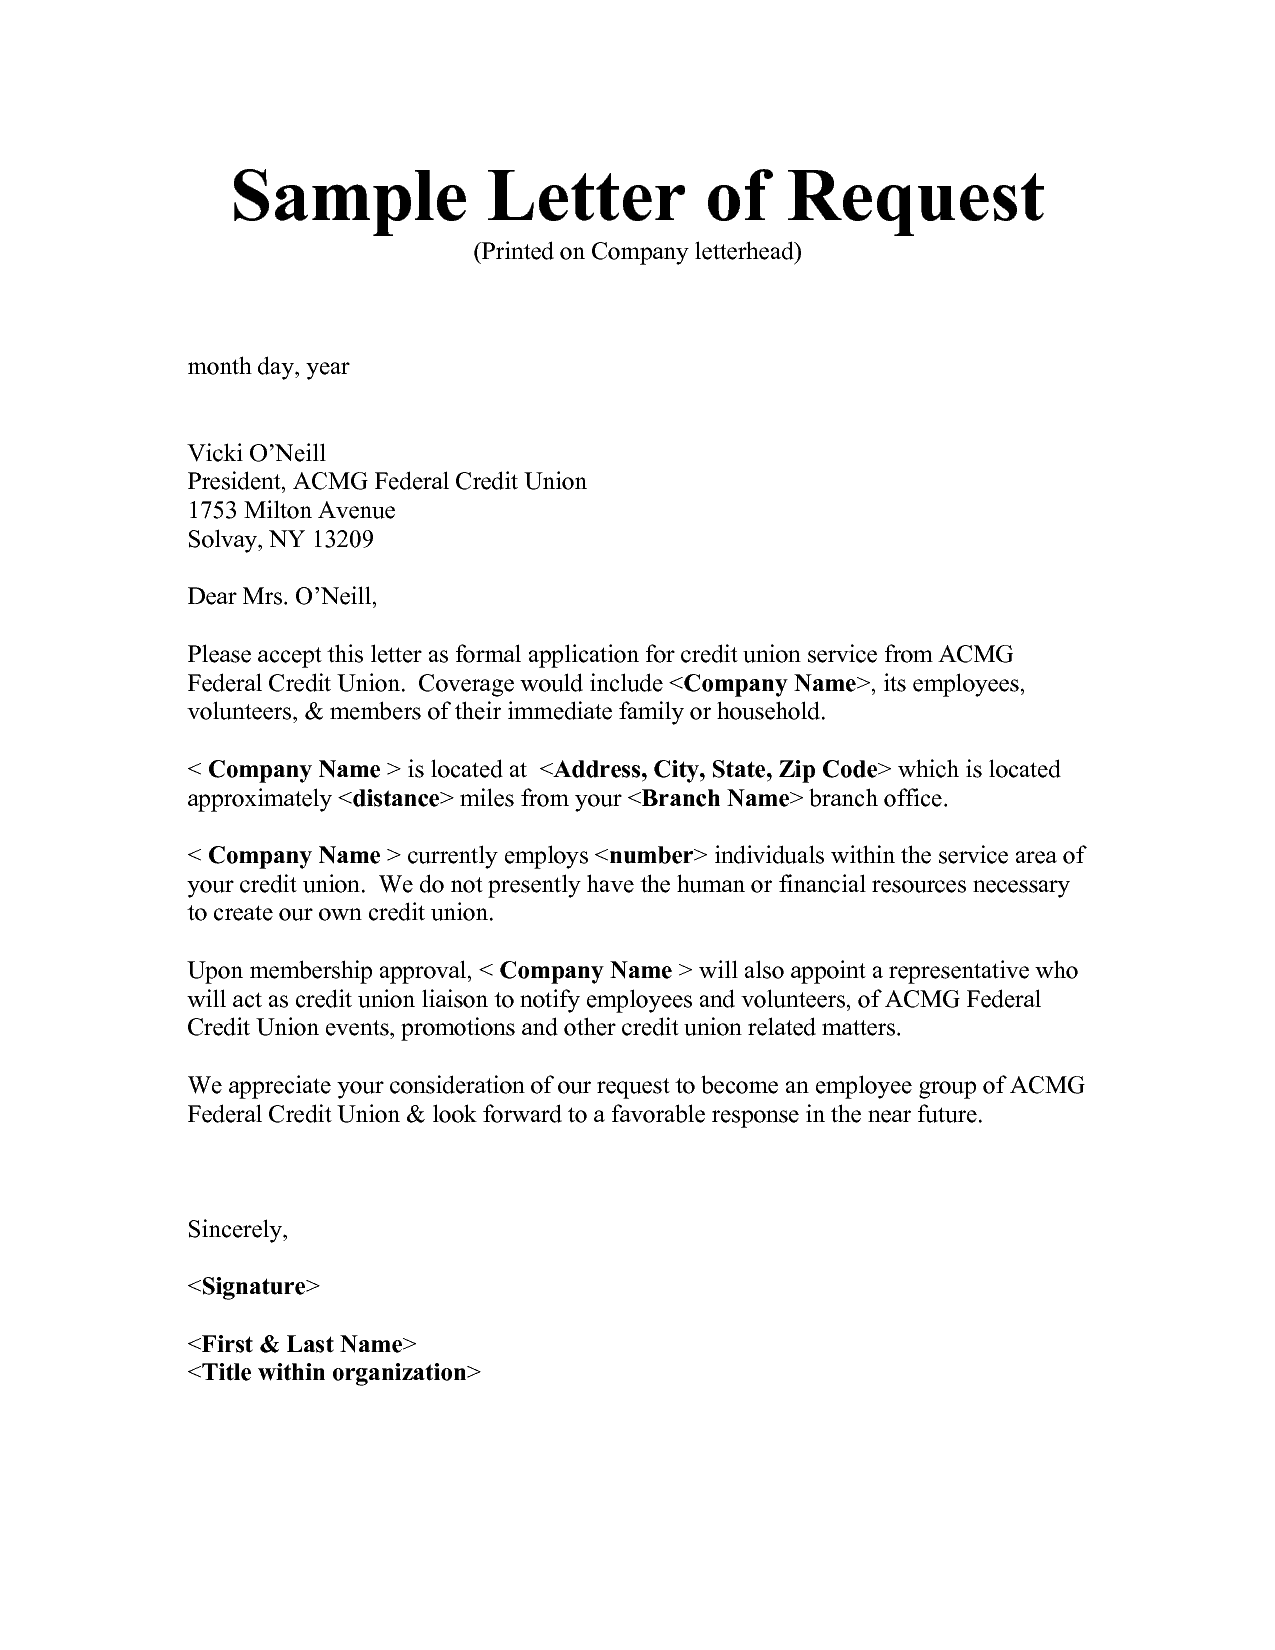 Sample request letters writing professional application letter sample request letters writing professional application letter thecheapjerseys